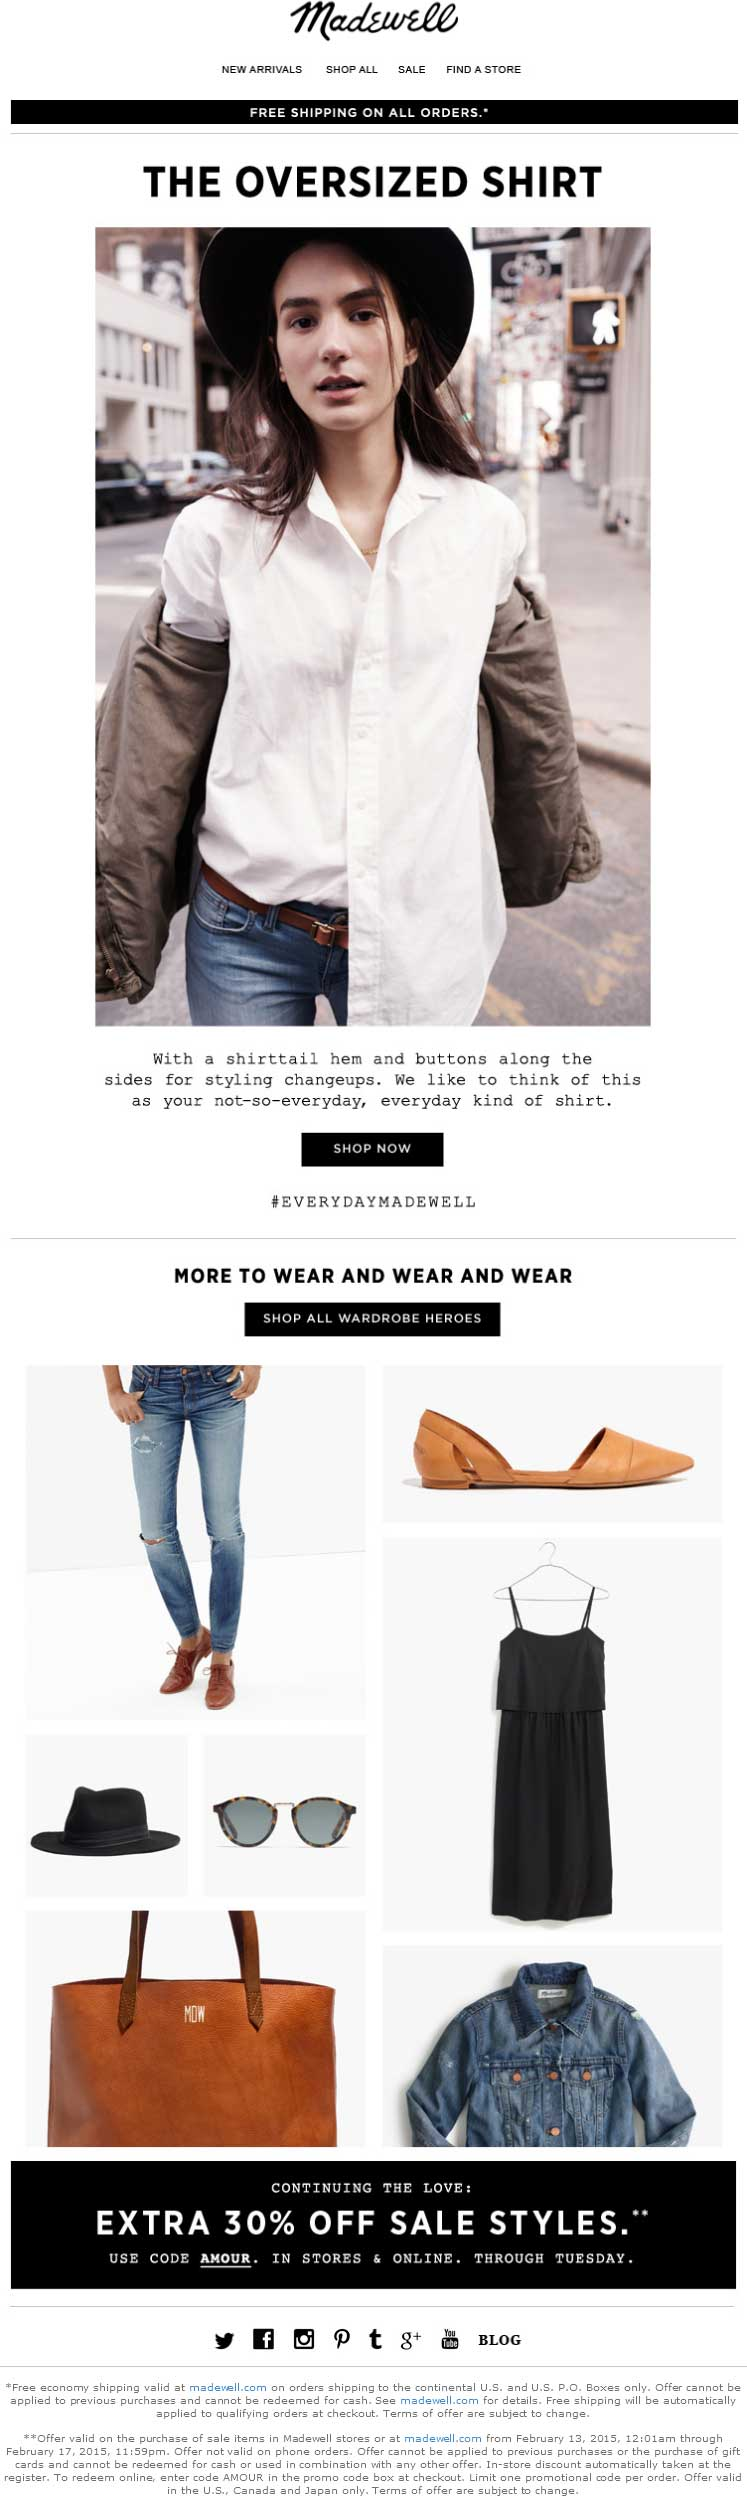 Madewell Coupon March 2018 Extra 30% off sale items at Madewell, or online via promo code AMOUR